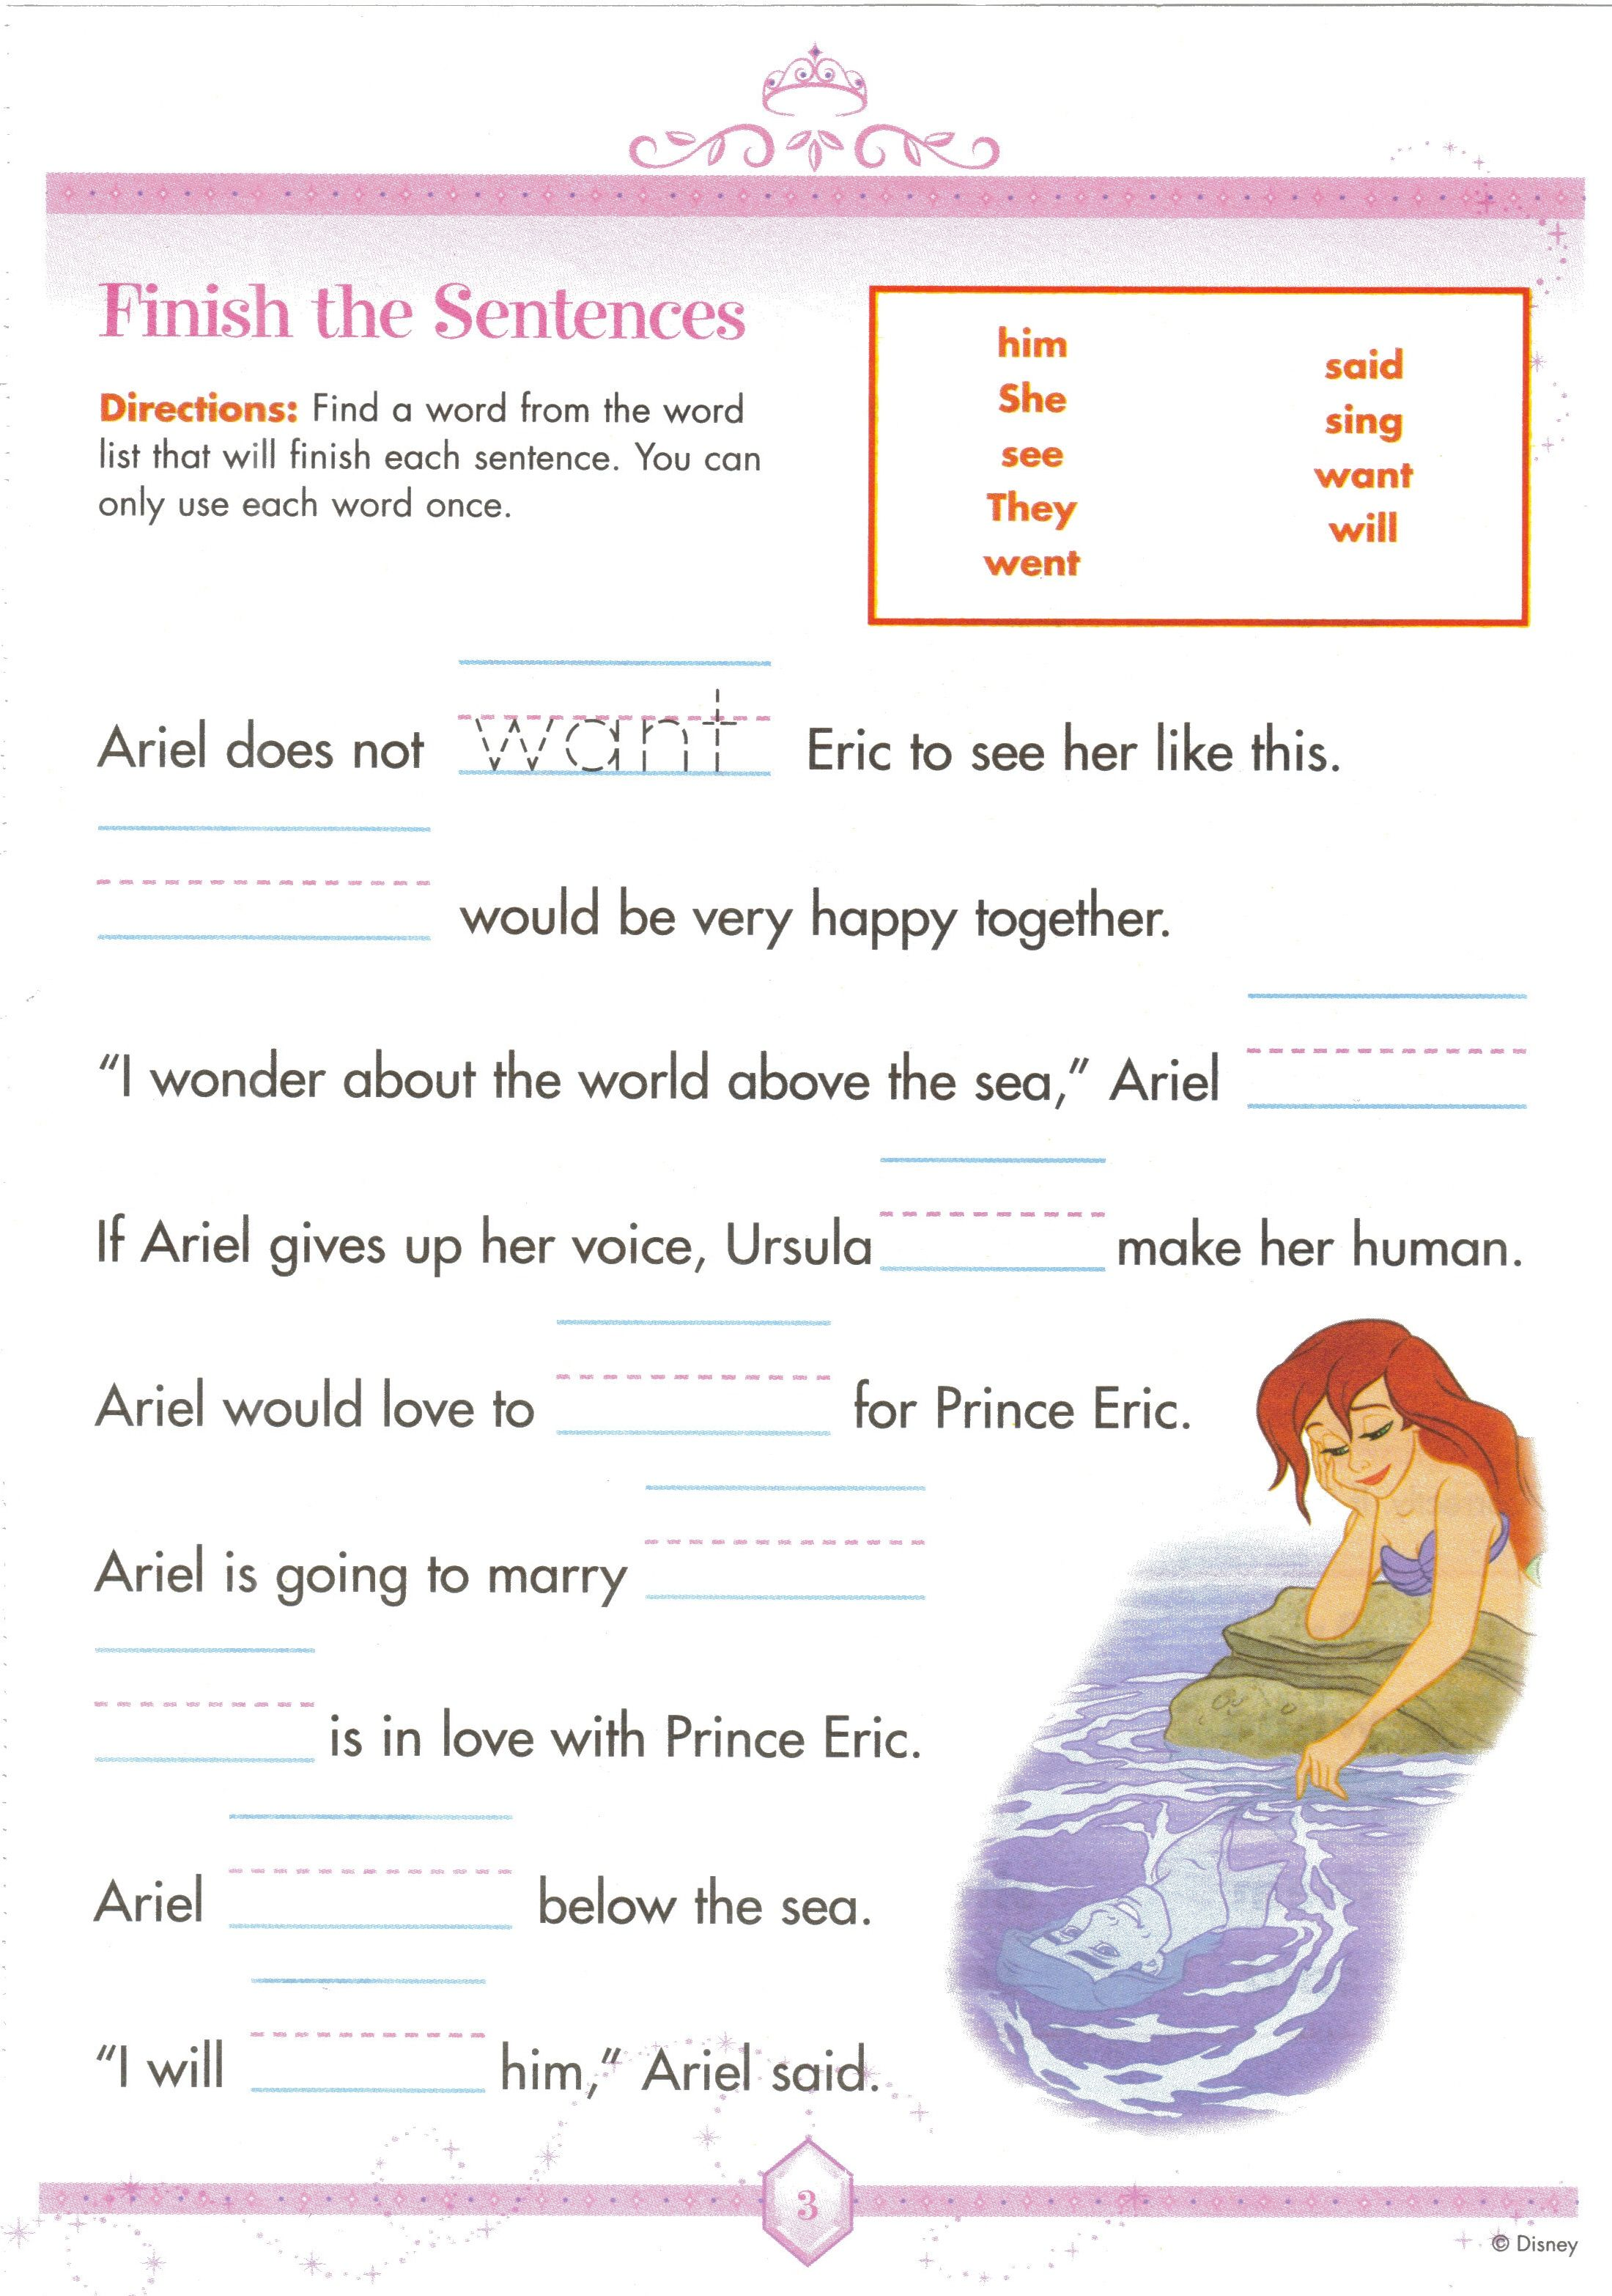 Weirdmailus  Stunning  Images About Worksheets On Pinterest  Fun Facts For Kids  With Goodlooking  Images About Worksheets On Pinterest  Fun Facts For Kids Earth Day Worksheets And Jungles With Awesome Kindergarden Math Worksheets Also Factoring Special Products Worksheet In Addition Multiply By  Worksheet And Kindergarten Vocabulary Worksheets As Well As Converting Inches To Feet Worksheet Additionally Kumon Printable Worksheets From Pinterestcom With Weirdmailus  Goodlooking  Images About Worksheets On Pinterest  Fun Facts For Kids  With Awesome  Images About Worksheets On Pinterest  Fun Facts For Kids Earth Day Worksheets And Jungles And Stunning Kindergarden Math Worksheets Also Factoring Special Products Worksheet In Addition Multiply By  Worksheet From Pinterestcom